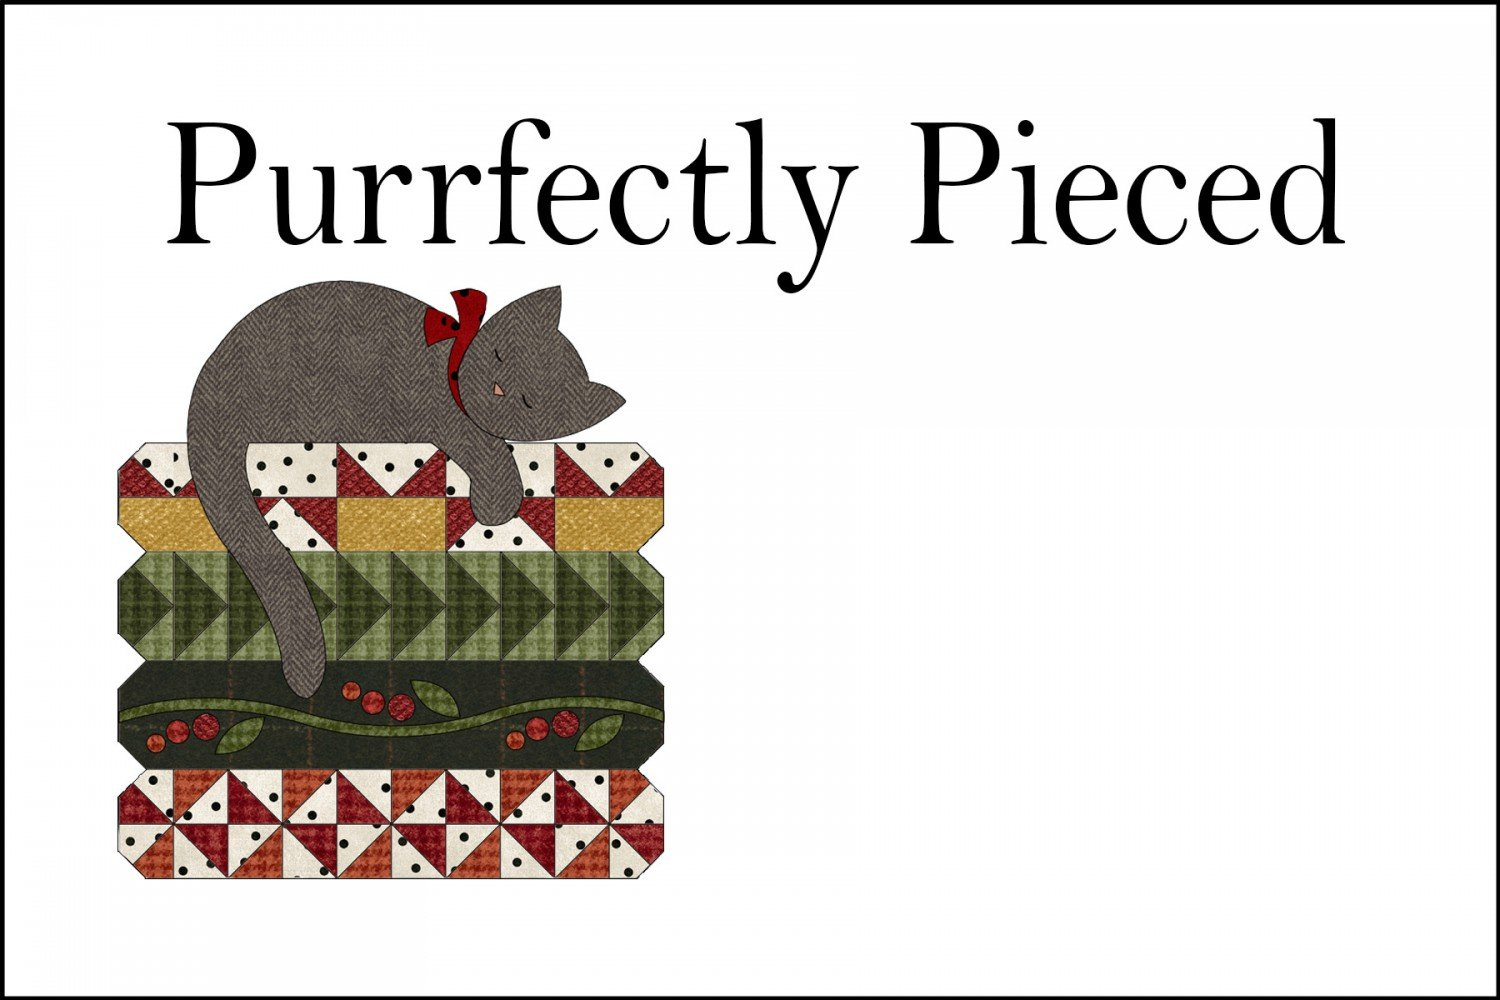 Purrfectly Pieced Quilt Labels - QL1501 - MAY BE RESTOCKED UPON REQUEST